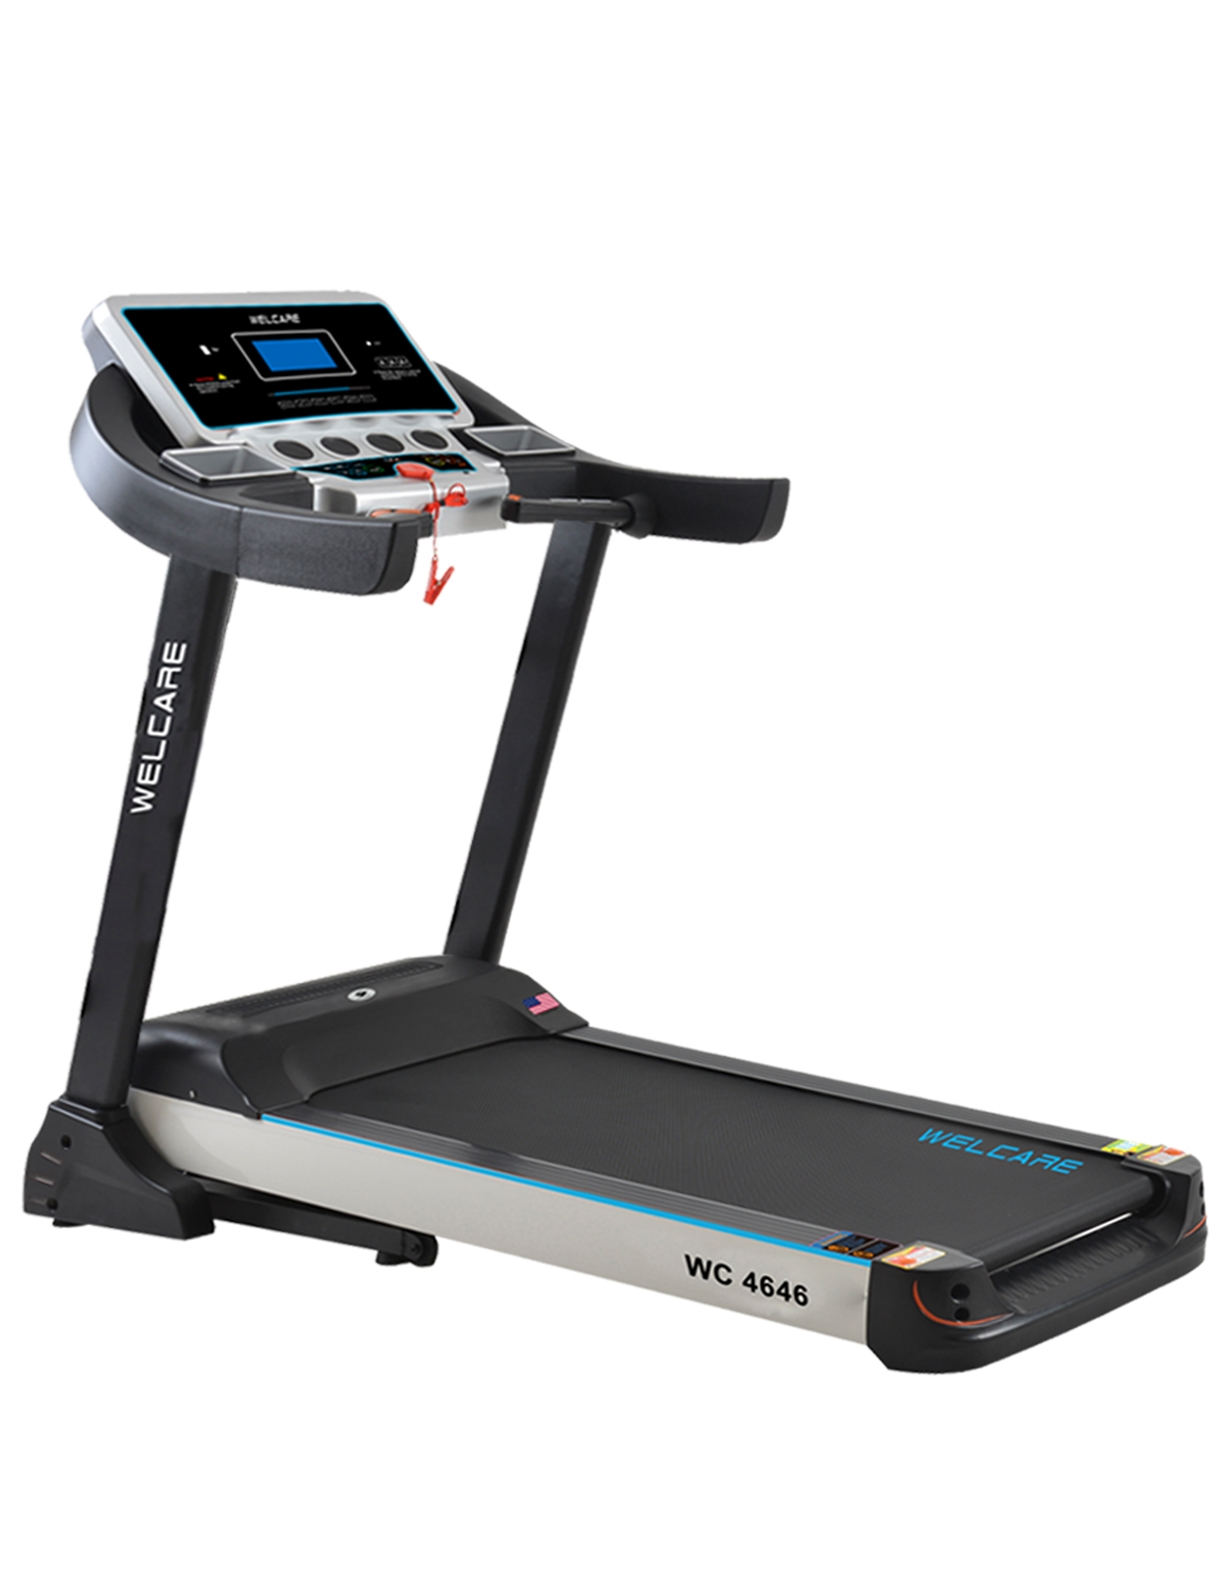 WC 4646 DC MOTORIZED TREADMILL